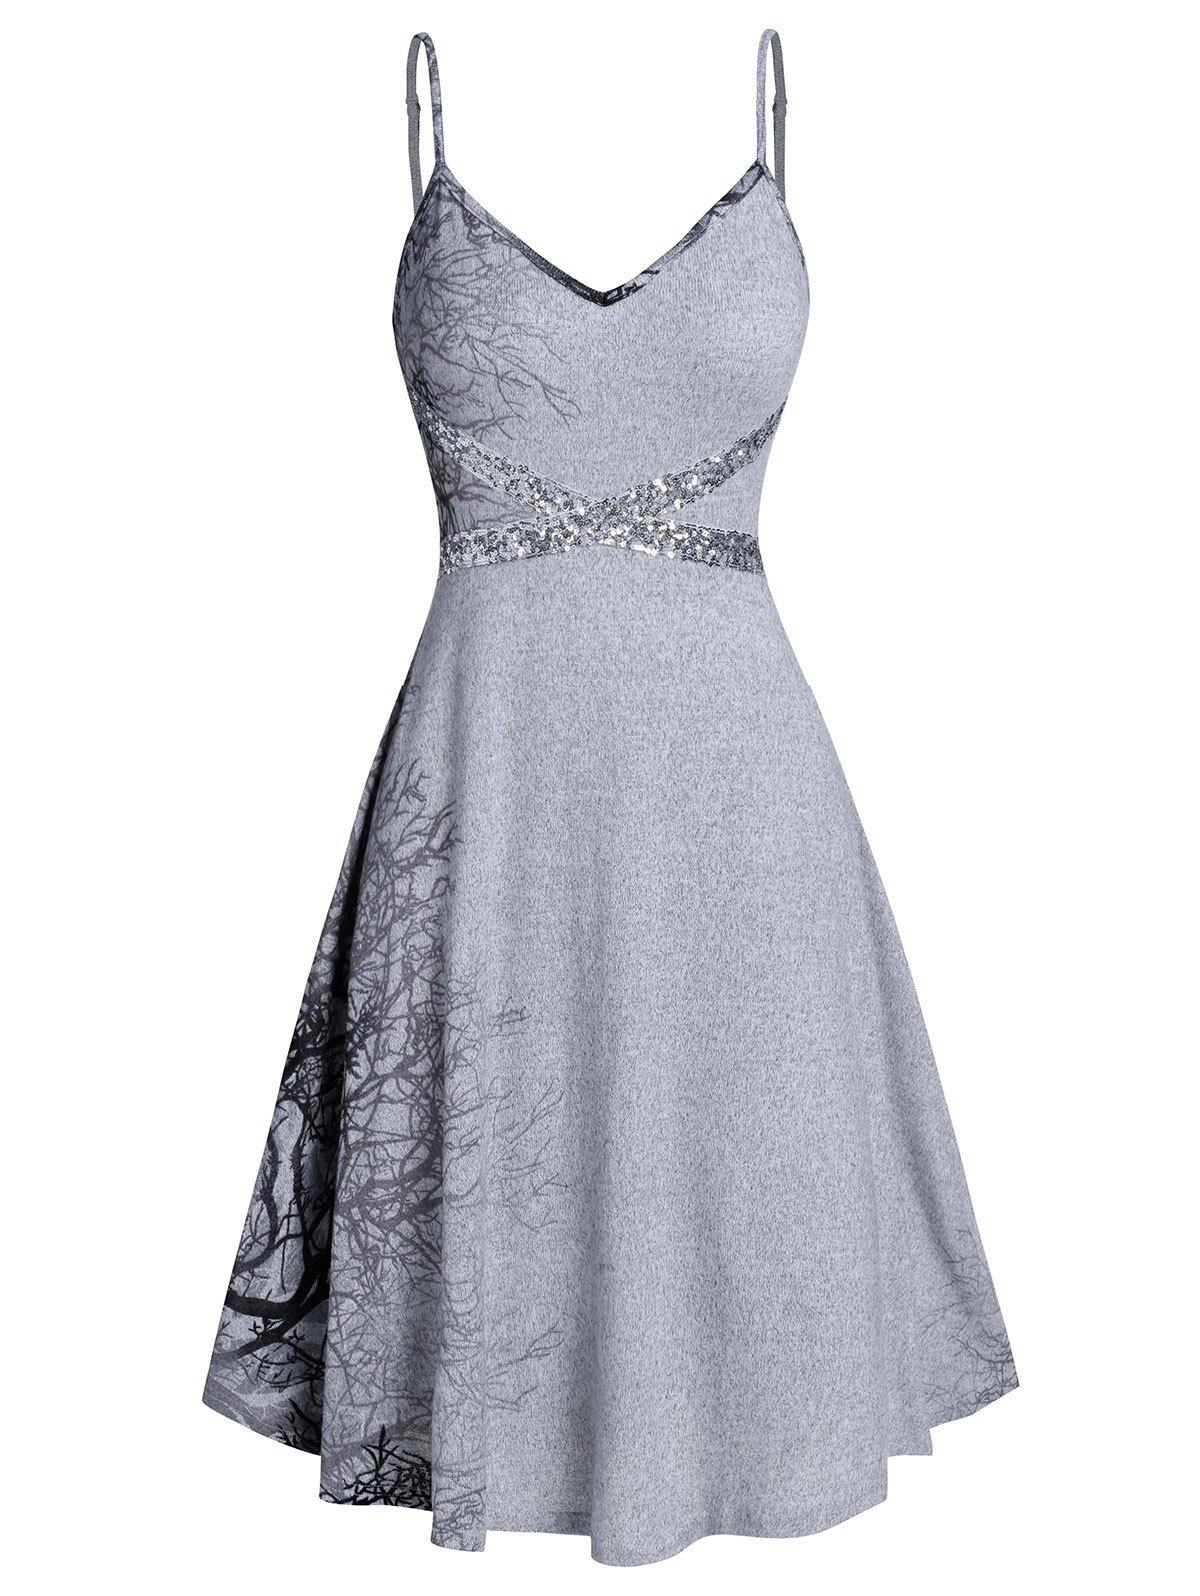 Cami Printed Sequined Mini Dress - GRAY CLOUD M